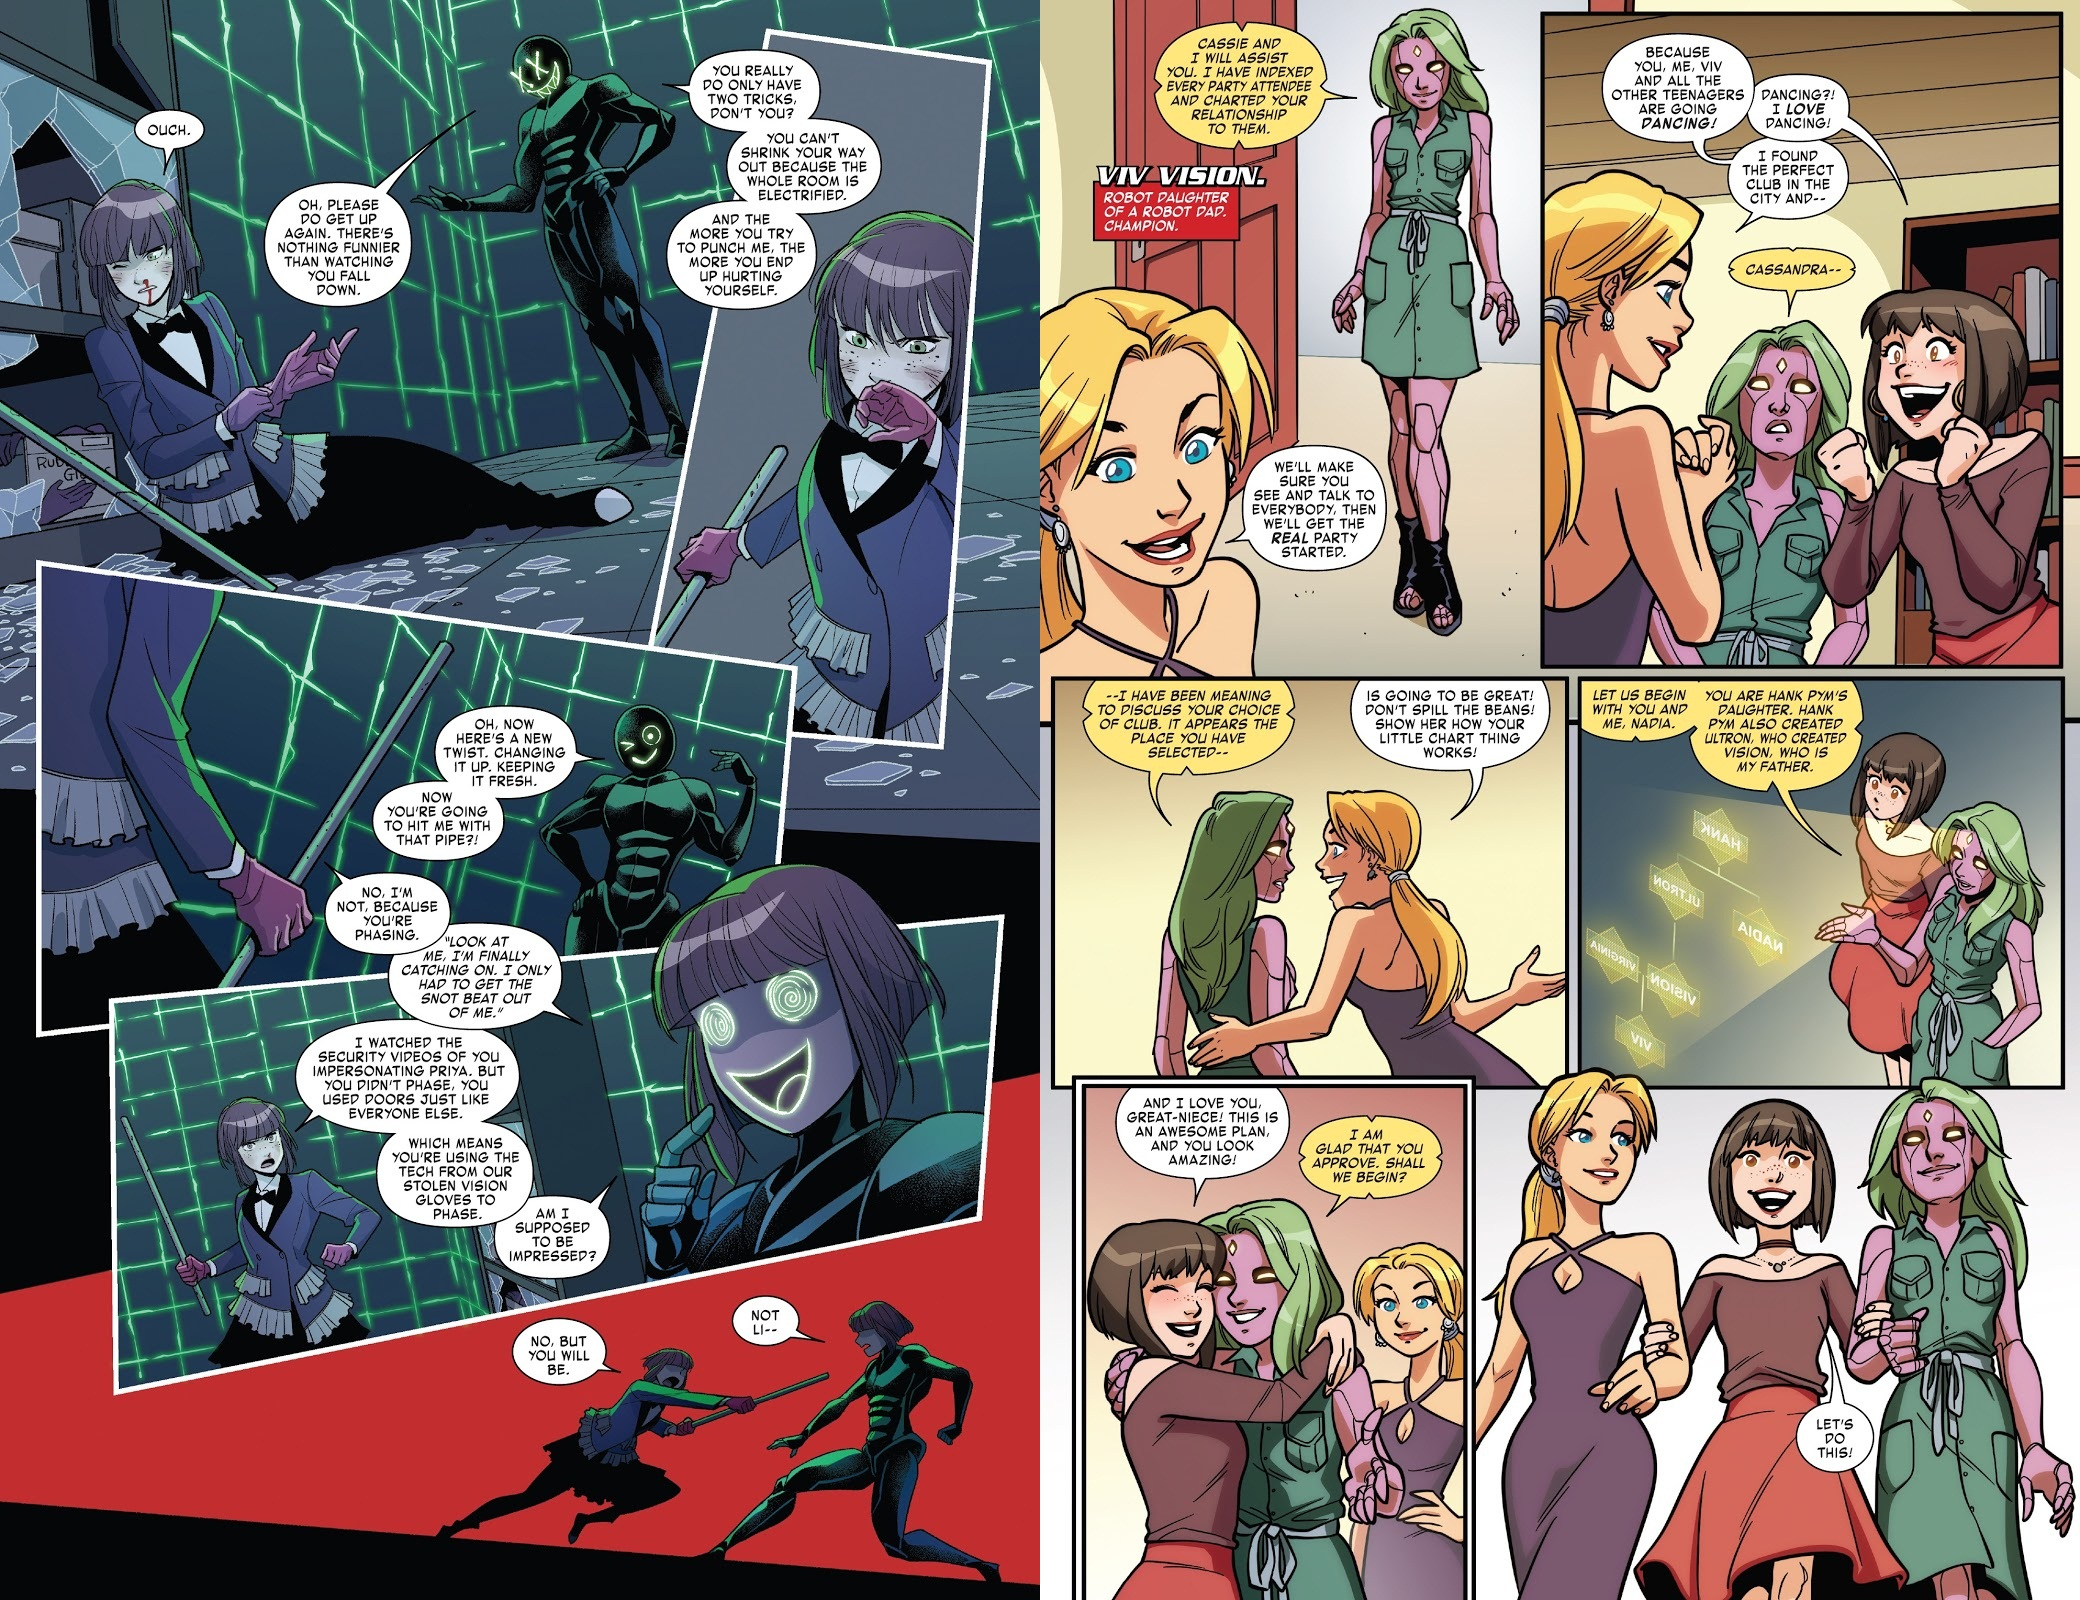 The Unstoppable Wasp G.I.R.L. vs A.I.M review